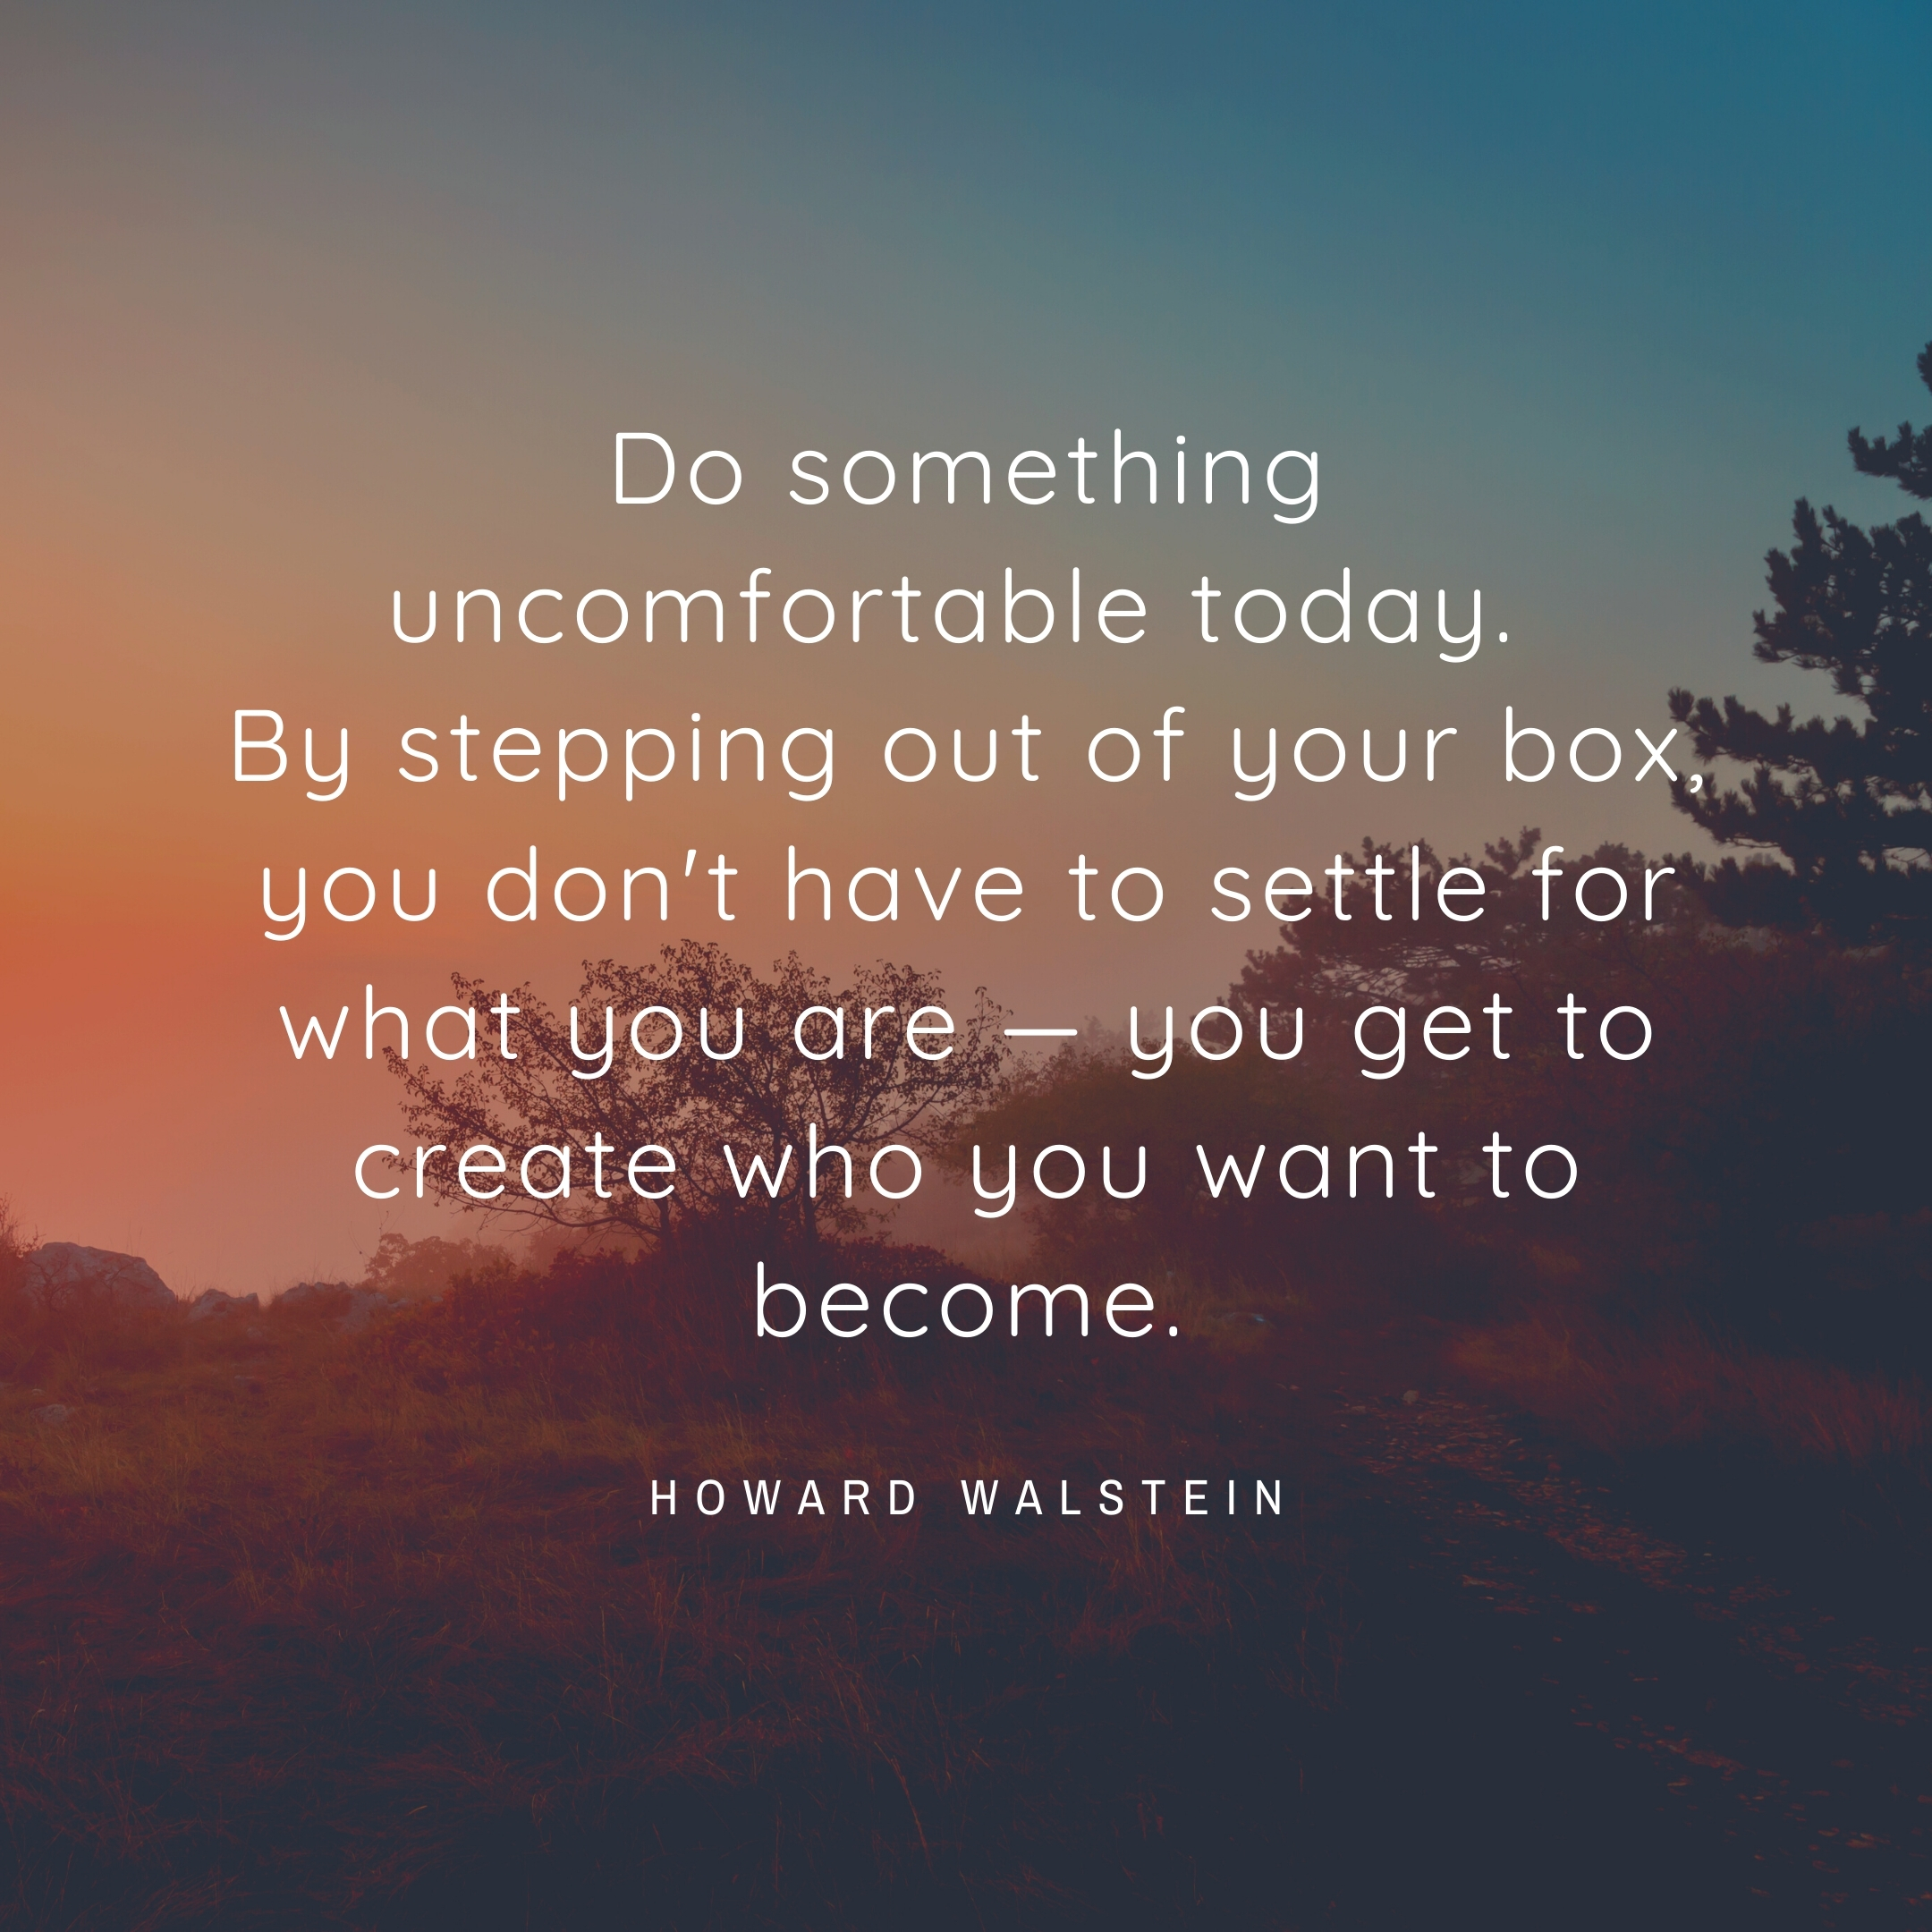 howard walstein quote   daily motivation